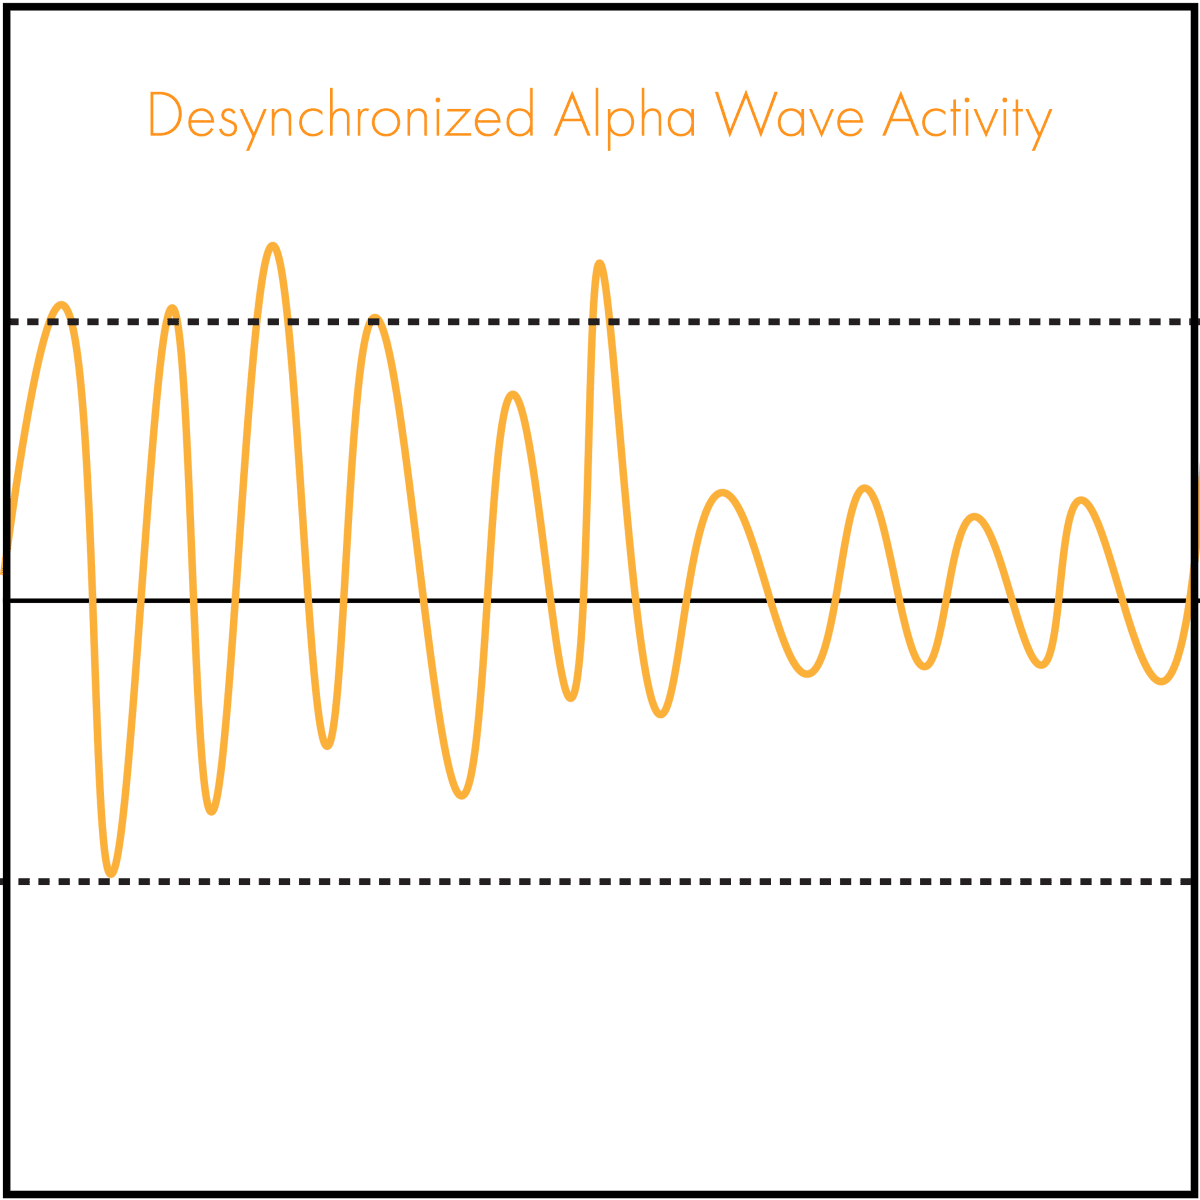 desynchronized alpha waves